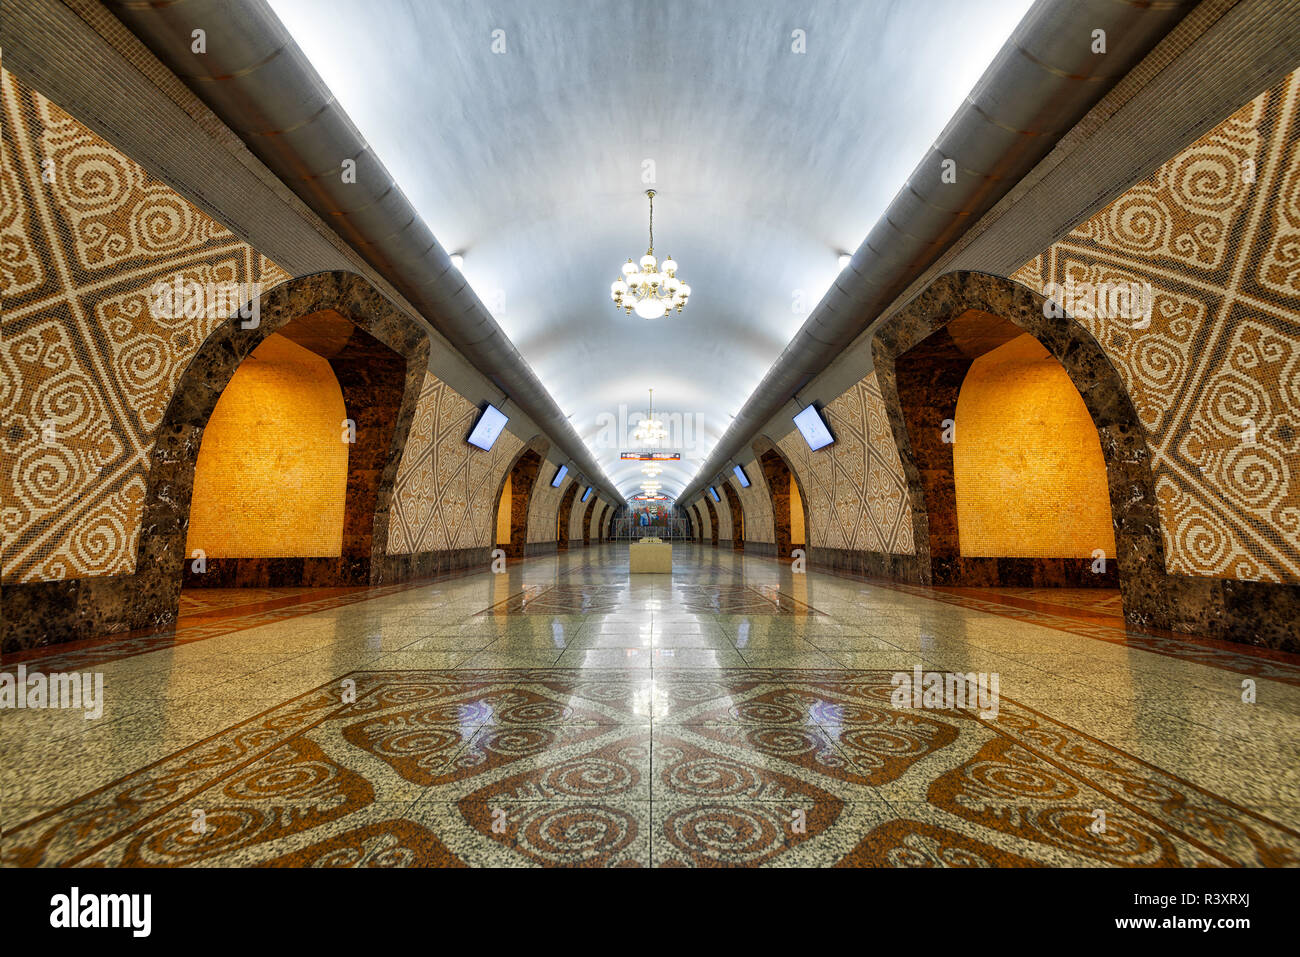 Metro Station in Almaty, Kazakhstan, taken in August 2018 taken in hdr - Stock Image